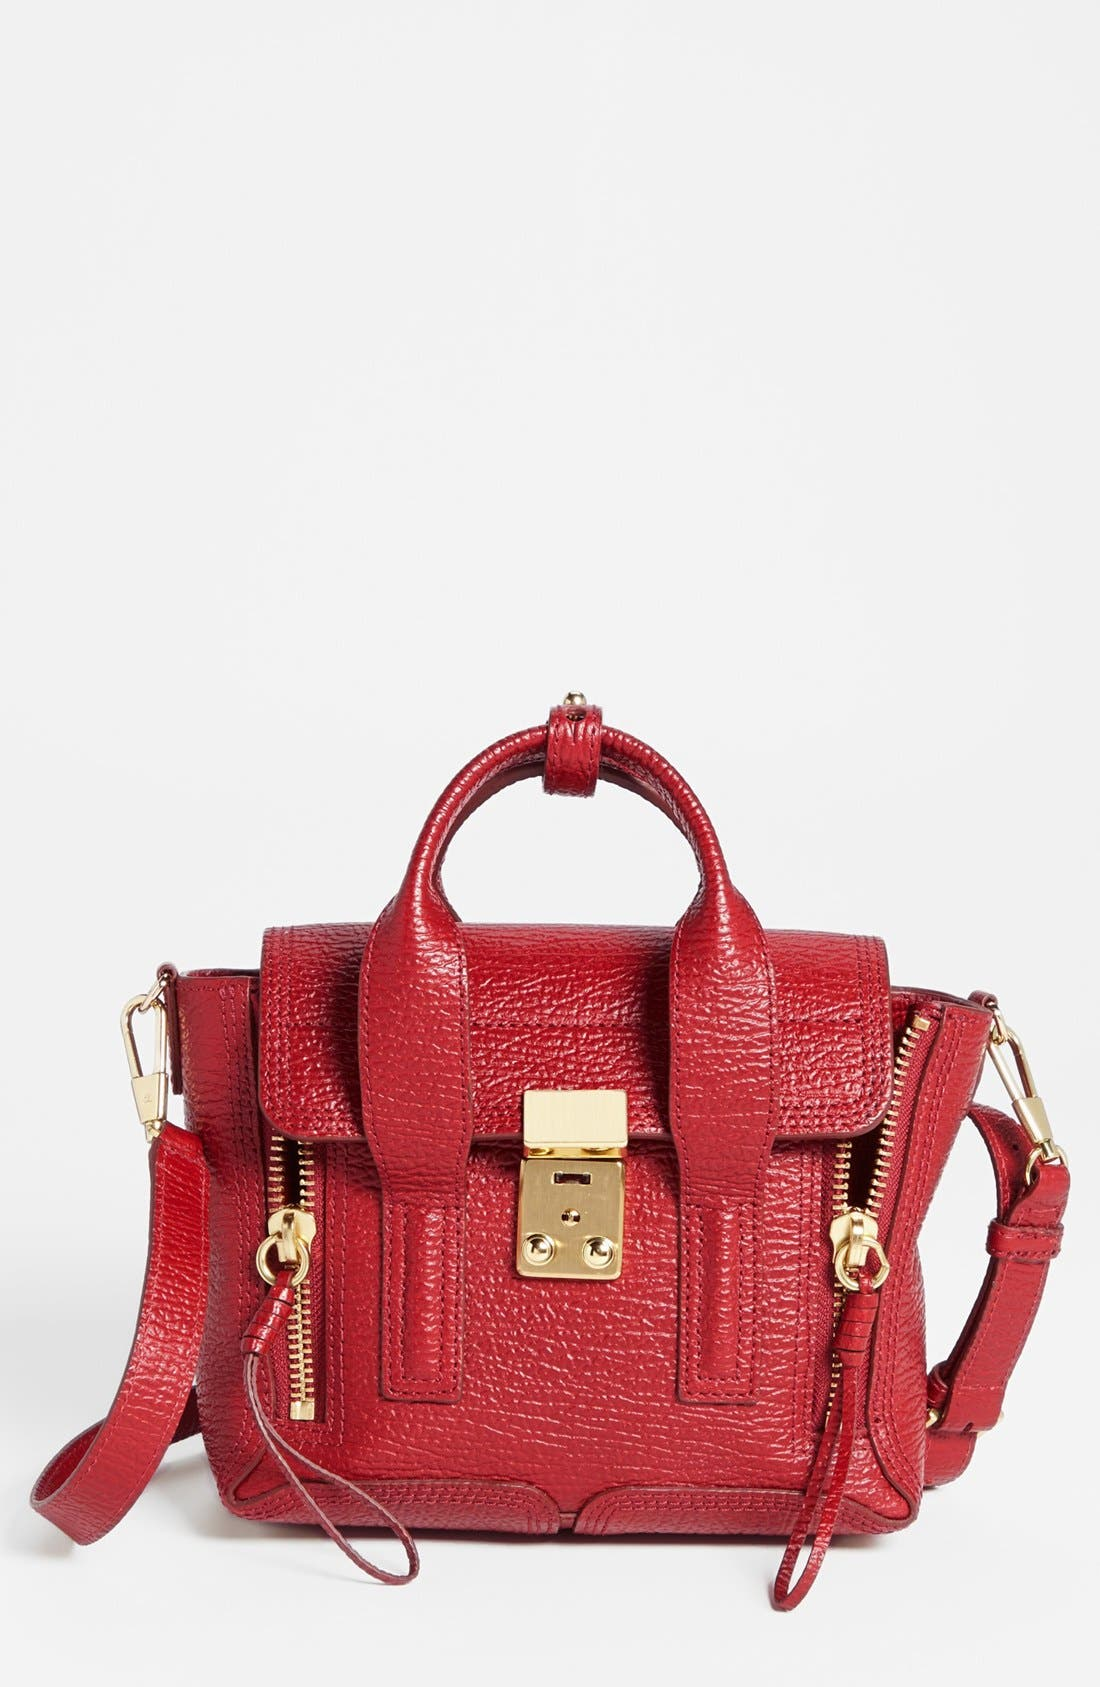 Main Image - 3.1 Phillip Lim 'Mini Pashli' Shark Embossed Leather Satchel